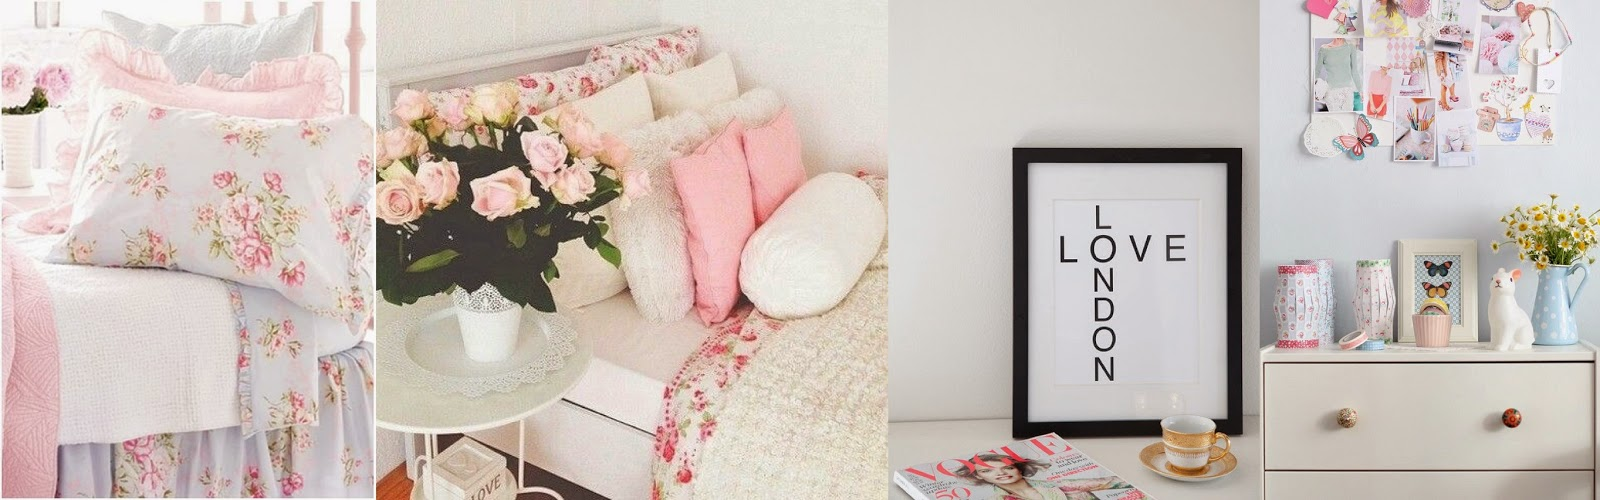 Schlafzimmer Ikea Inspiration: Do you remember?: Room Inspiration ...